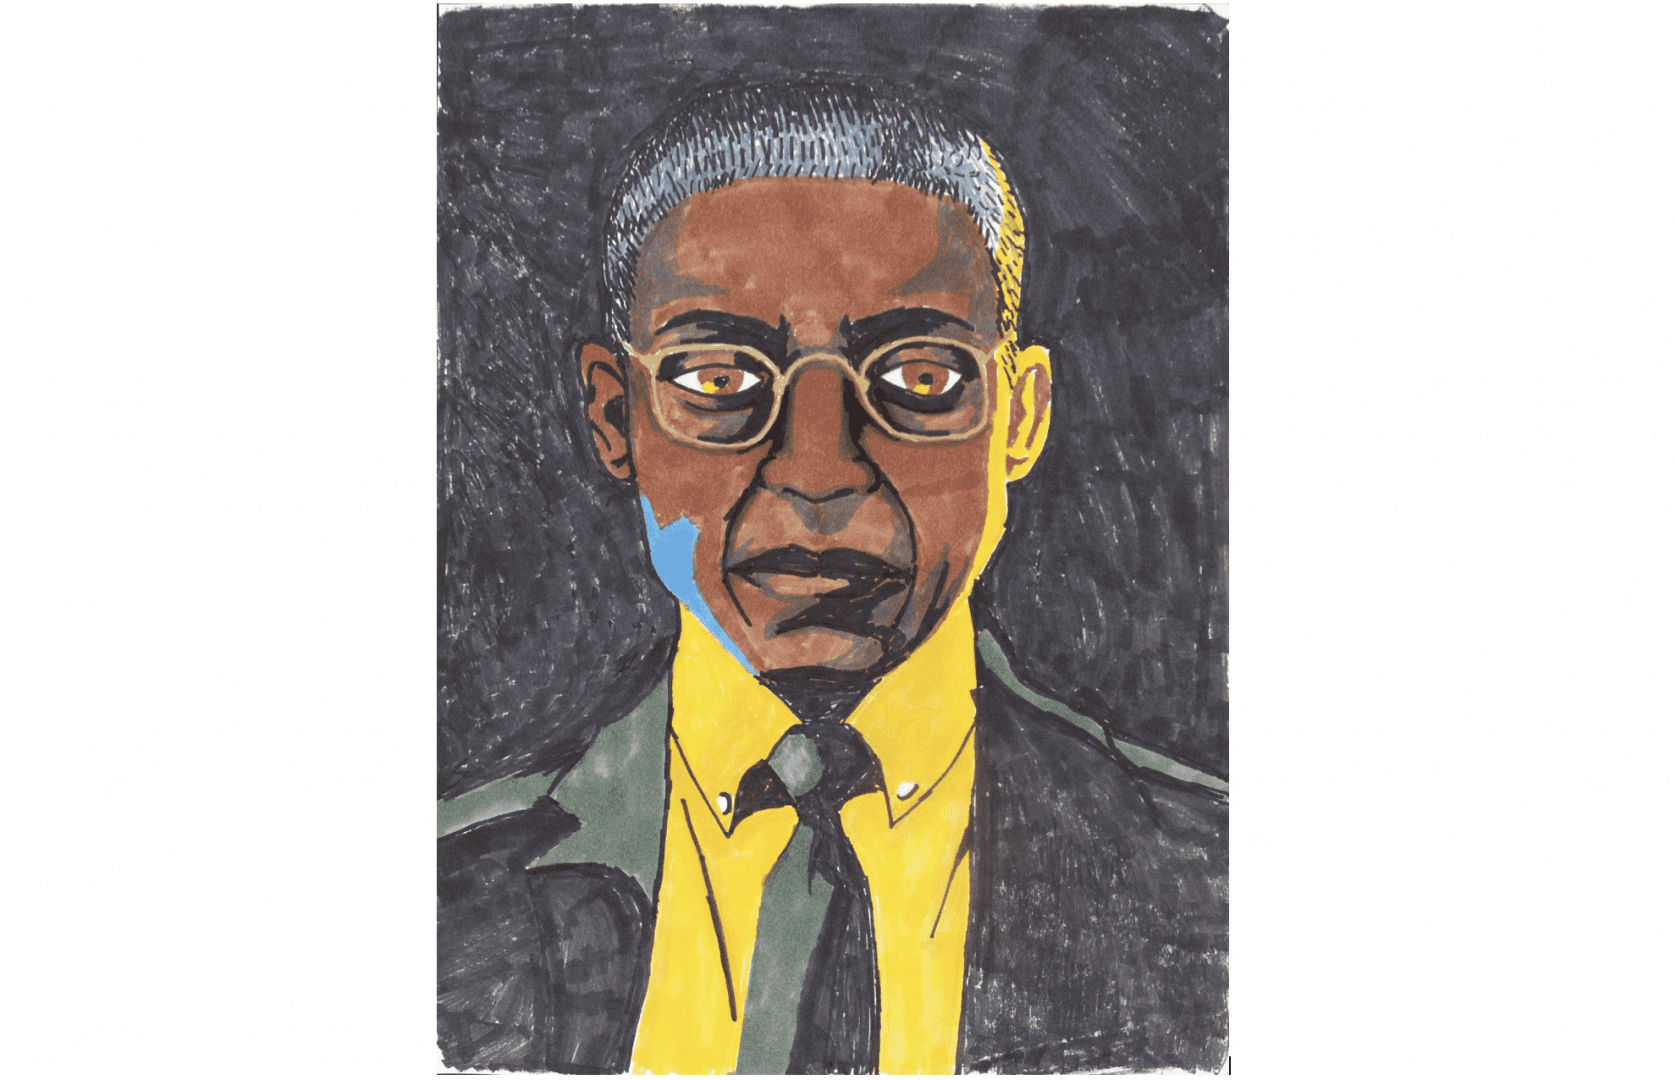 portrait of a person with medium brown skin, short gray or shiny hair, eyeglasses, and wearing a coat and tie